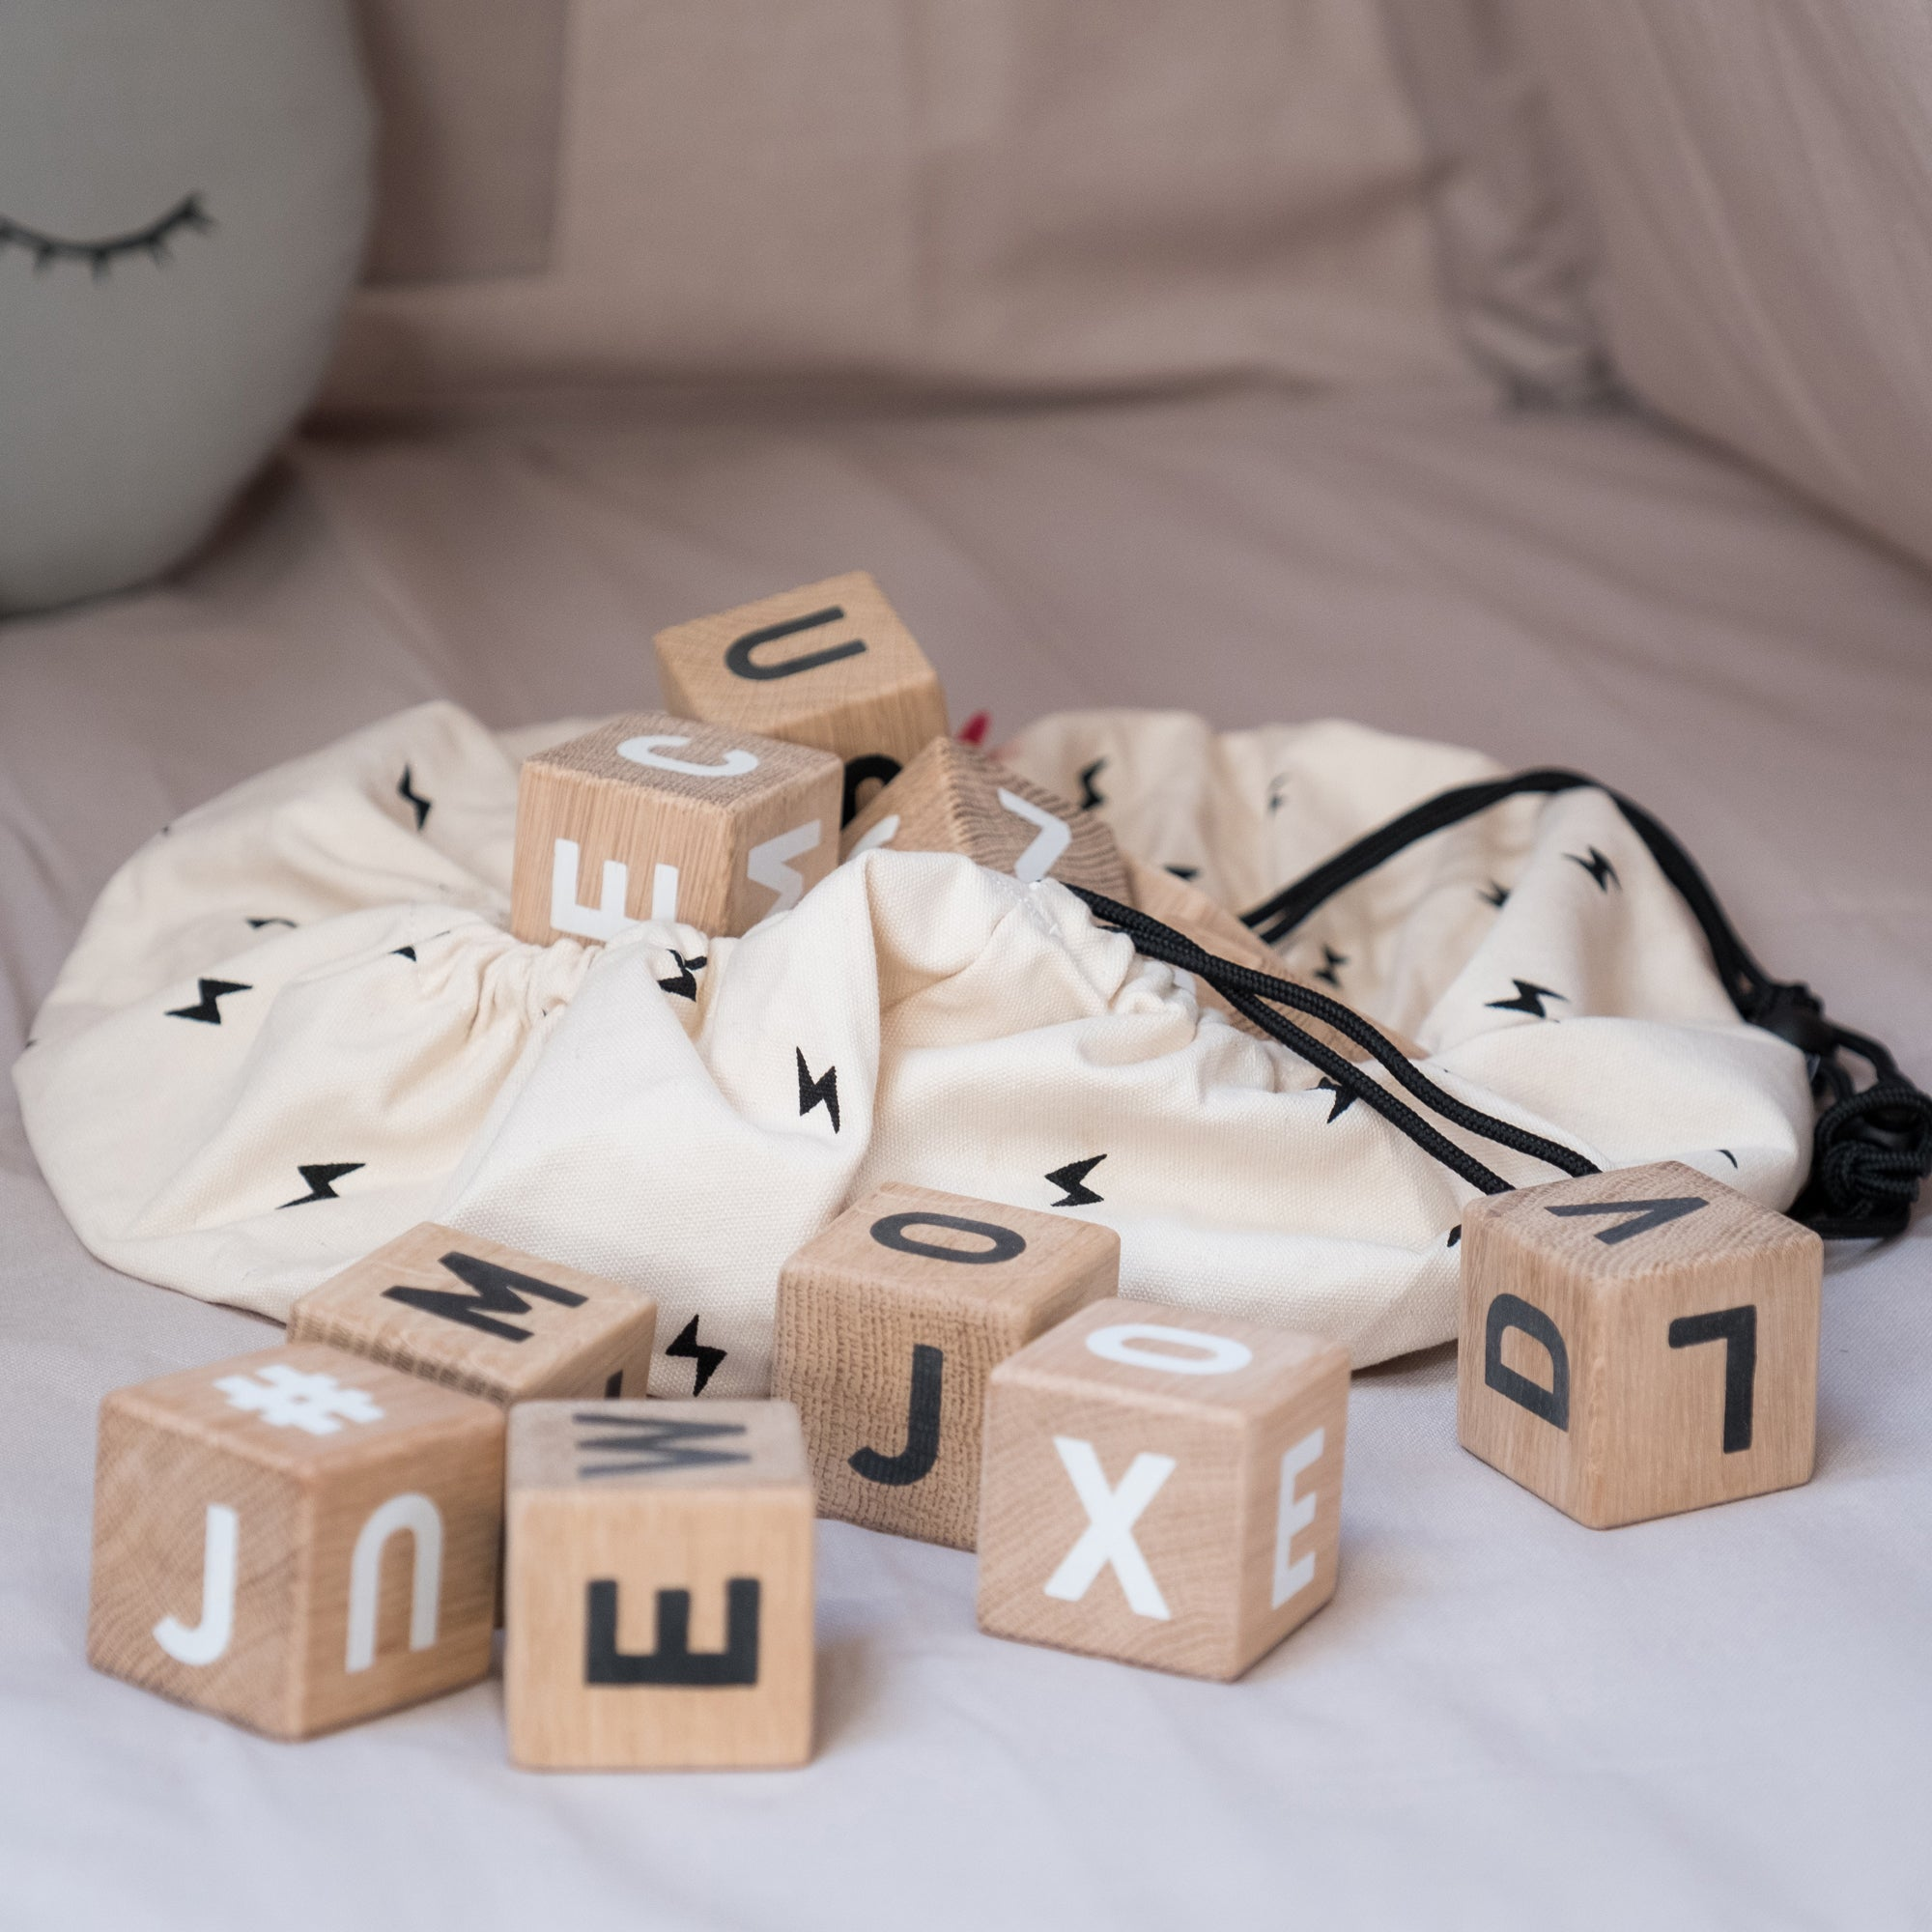 Word Cubes and Play & Go Mini Storage Bag, available at Bobby Rabbit.